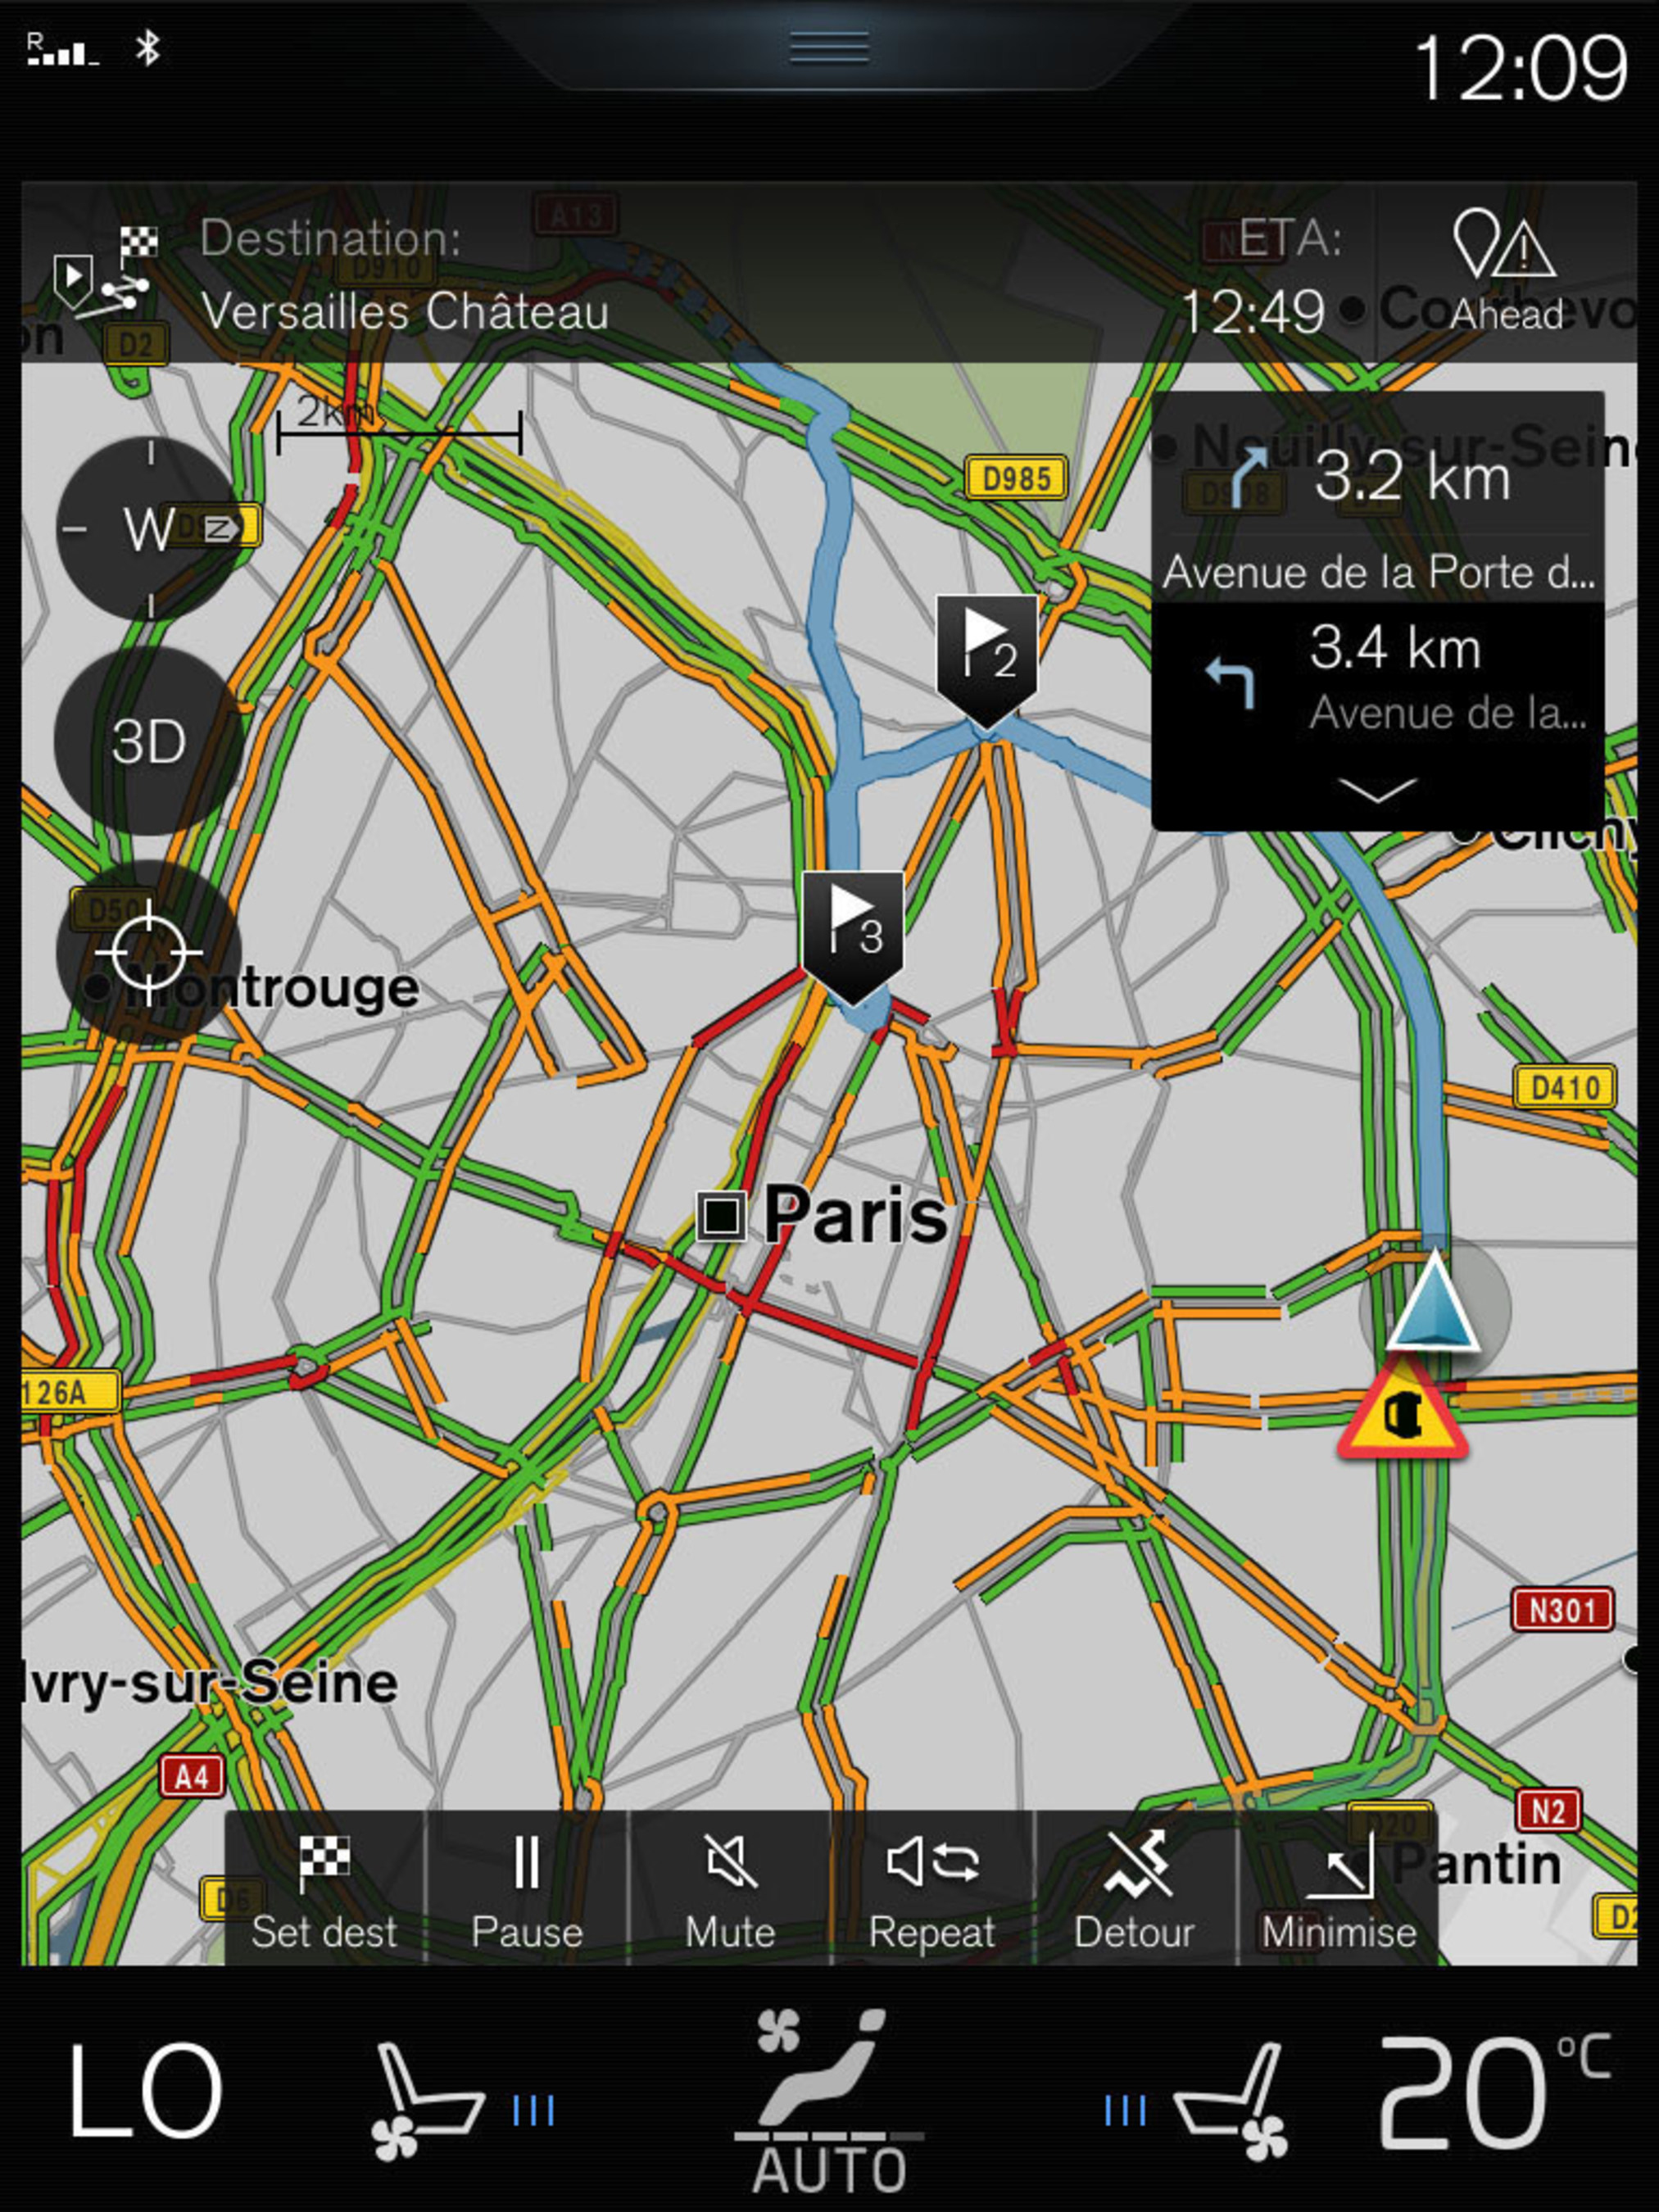 INRIX And Volvo Cars Debut Global Collaboration For Real-Time Traffic Information